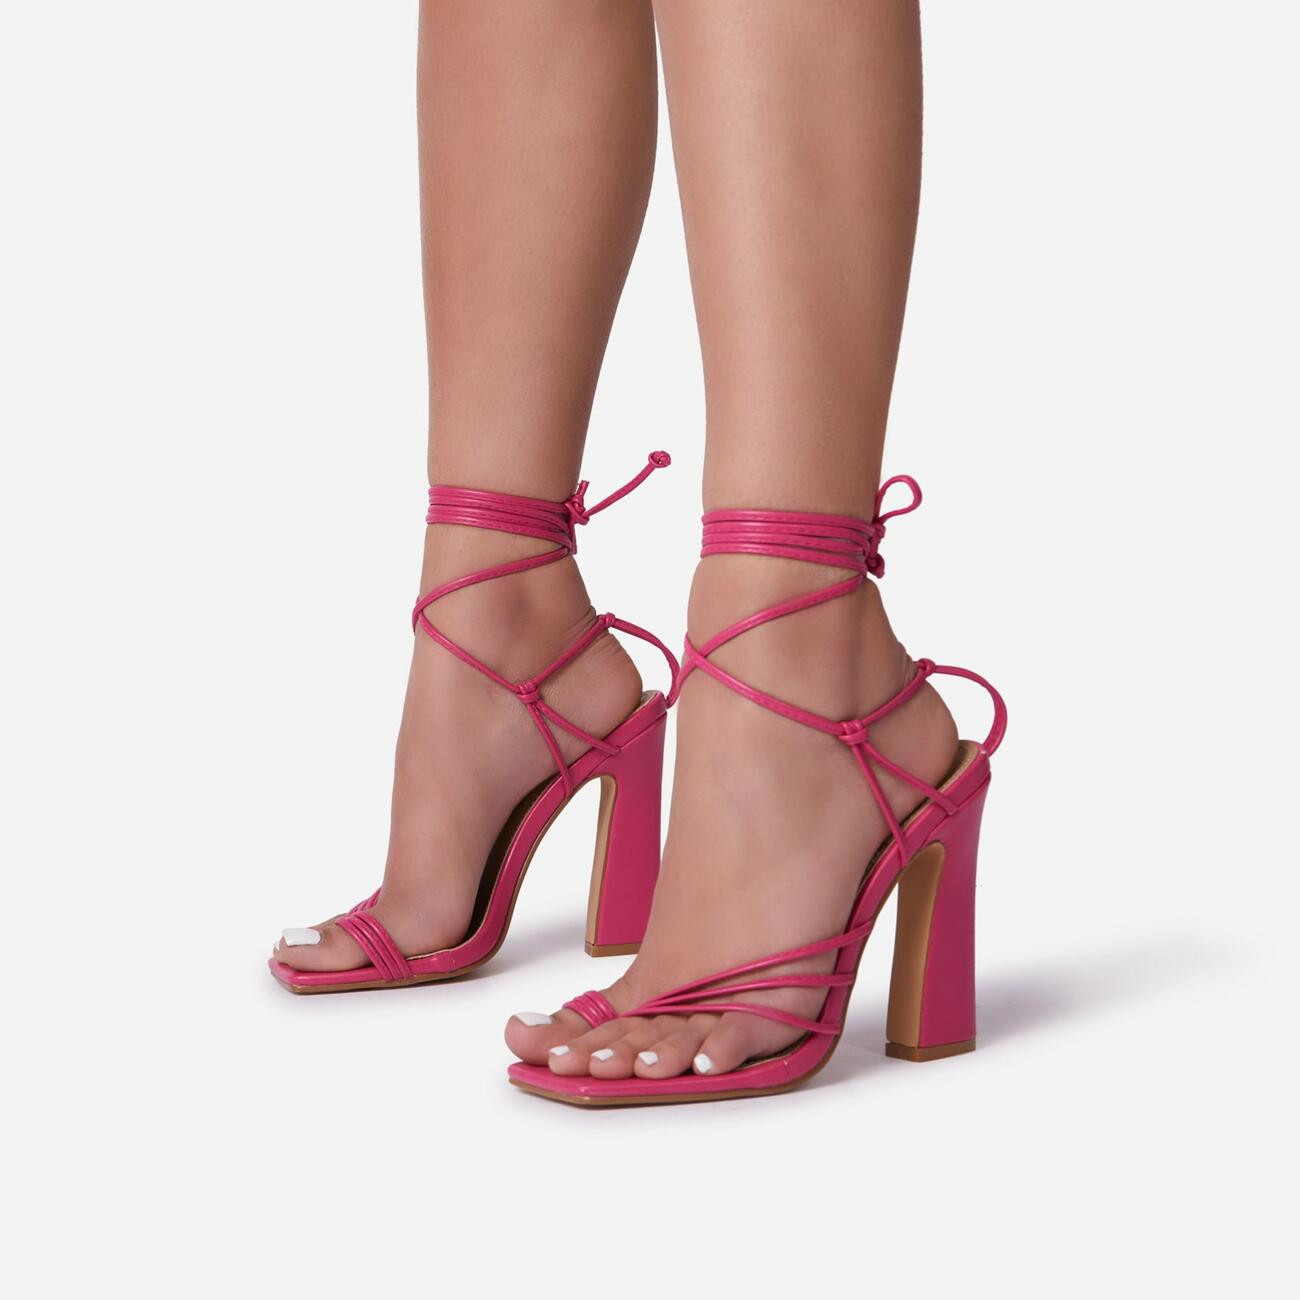 Wrap-Party Strappy Lace Up Square Toe Block Heel In Fuchsia Pink Faux Leather